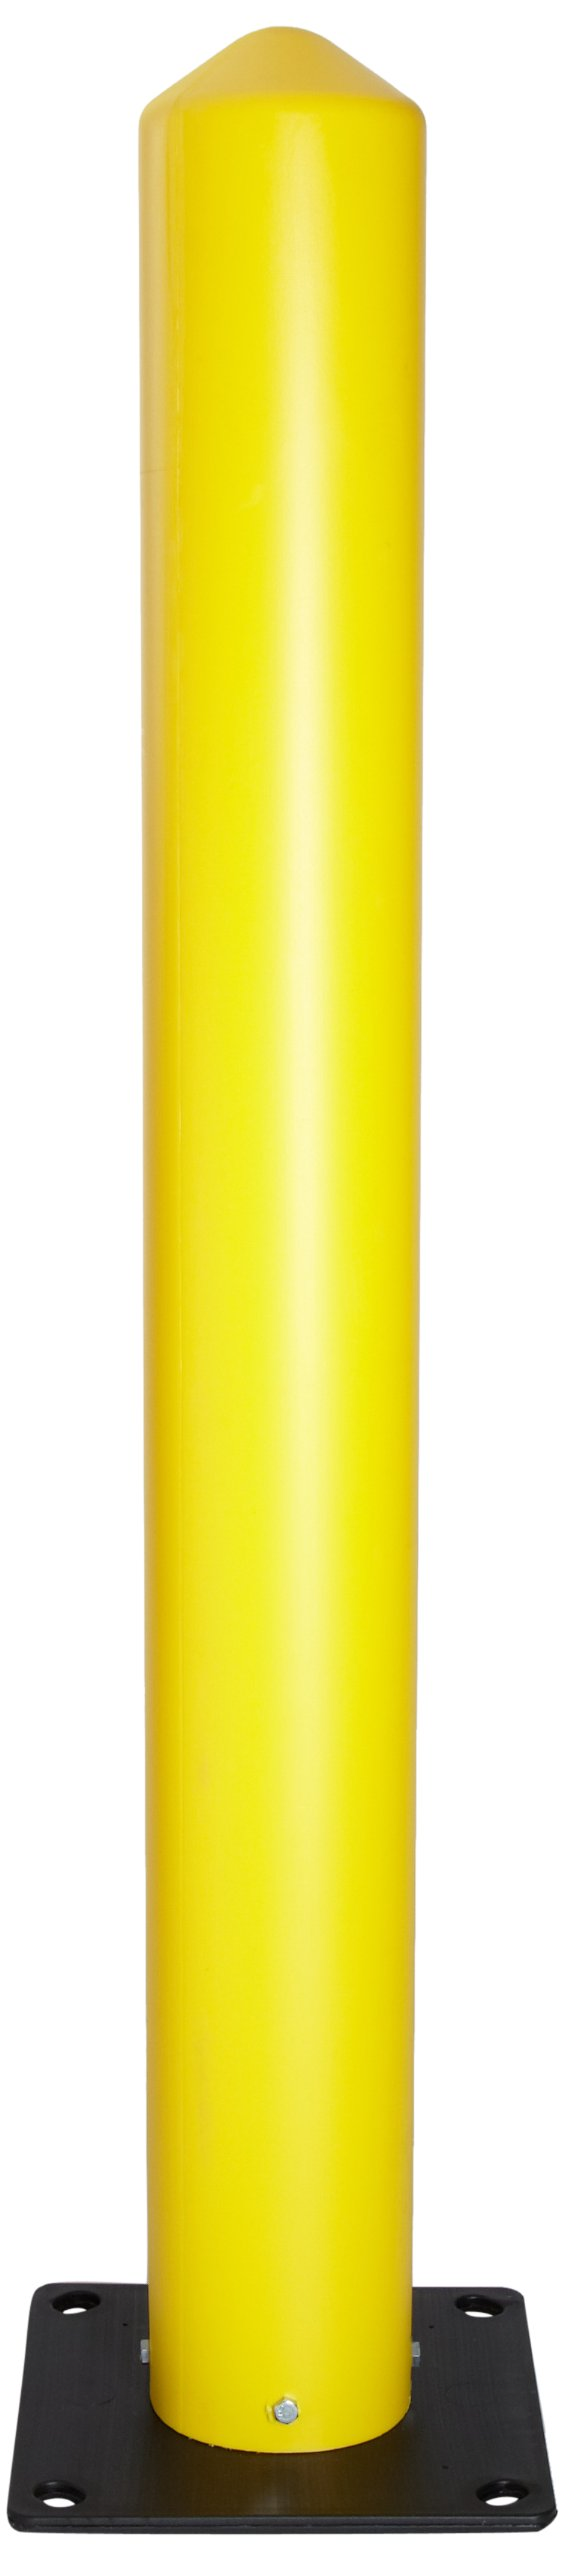 Eagle 1731 Poly Bollard Post, 5'' Width x 42'' Height, Yellow